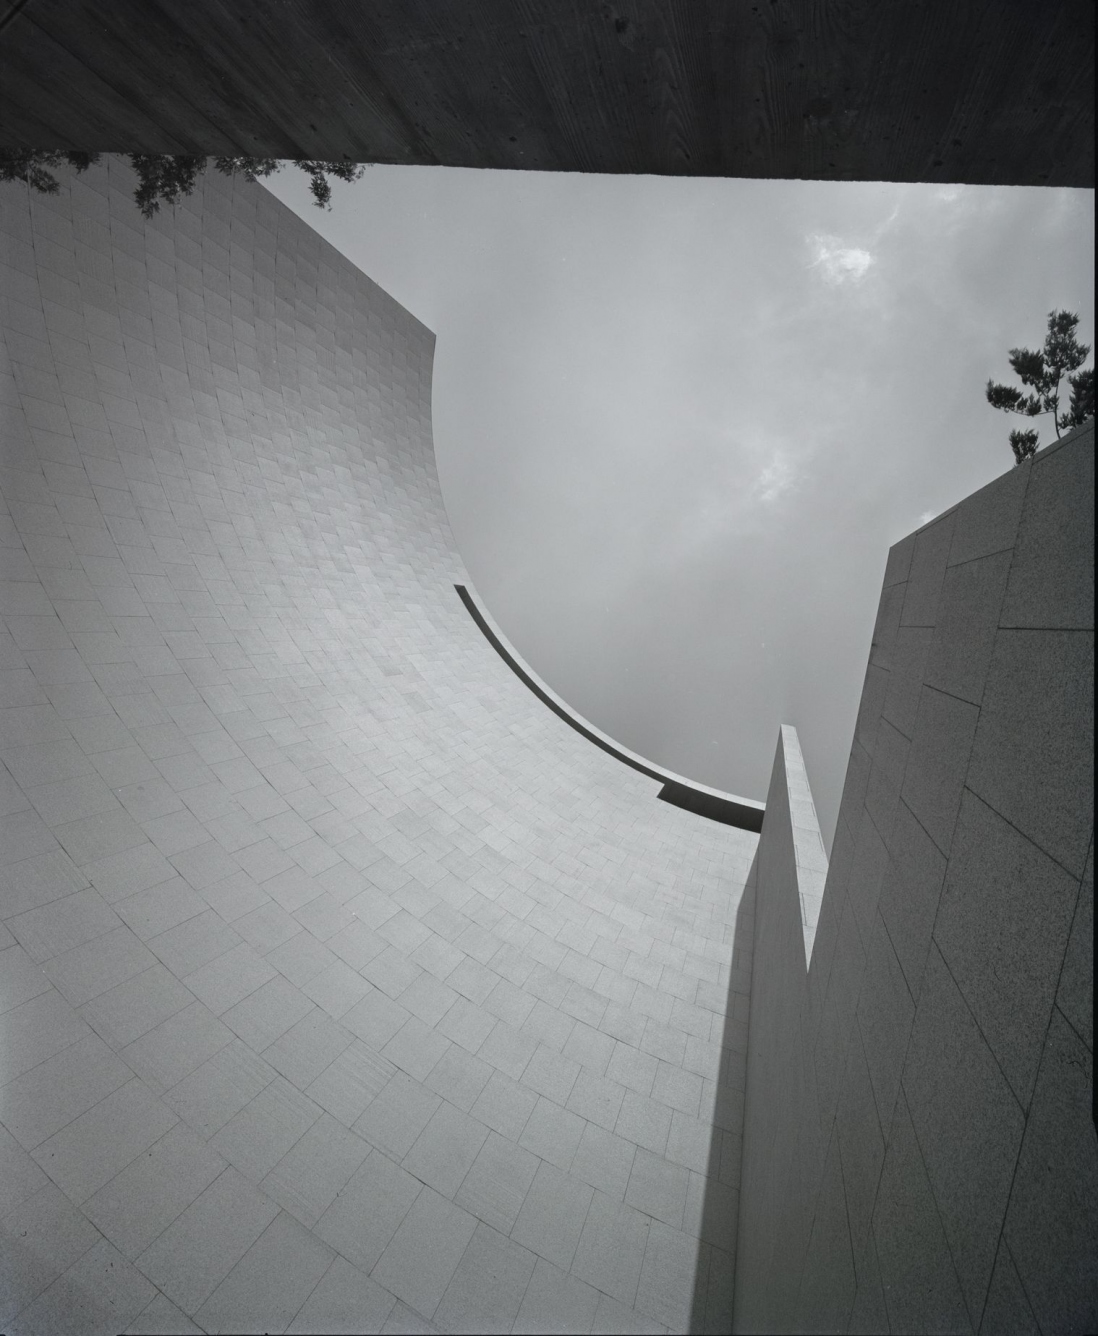 This is a black and white photo of a building facade shaped in a curved quadrant and taken from the base of the building looking up